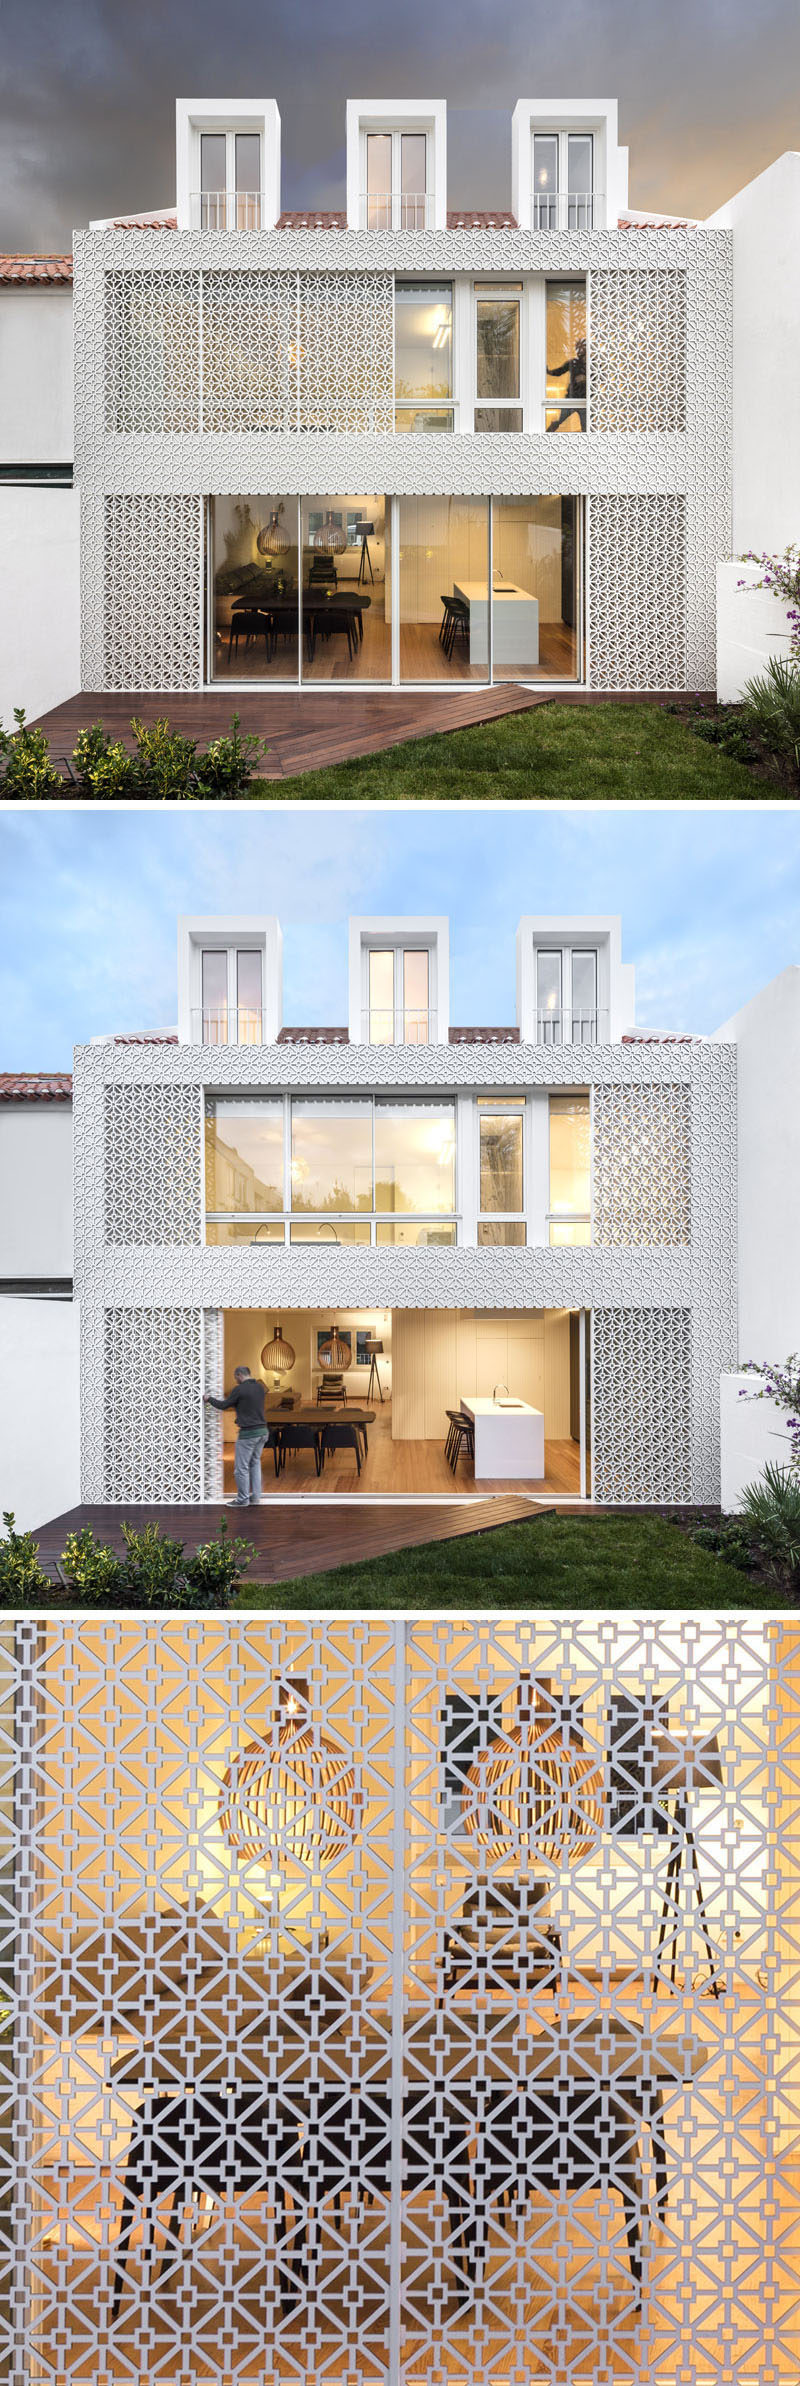 Exterior Design Ideas - 15 Buildings That Have Unique And Creative Facades // The white screen covering this home acts as a security measure and filters sunlight to help keep the house naturally cool.